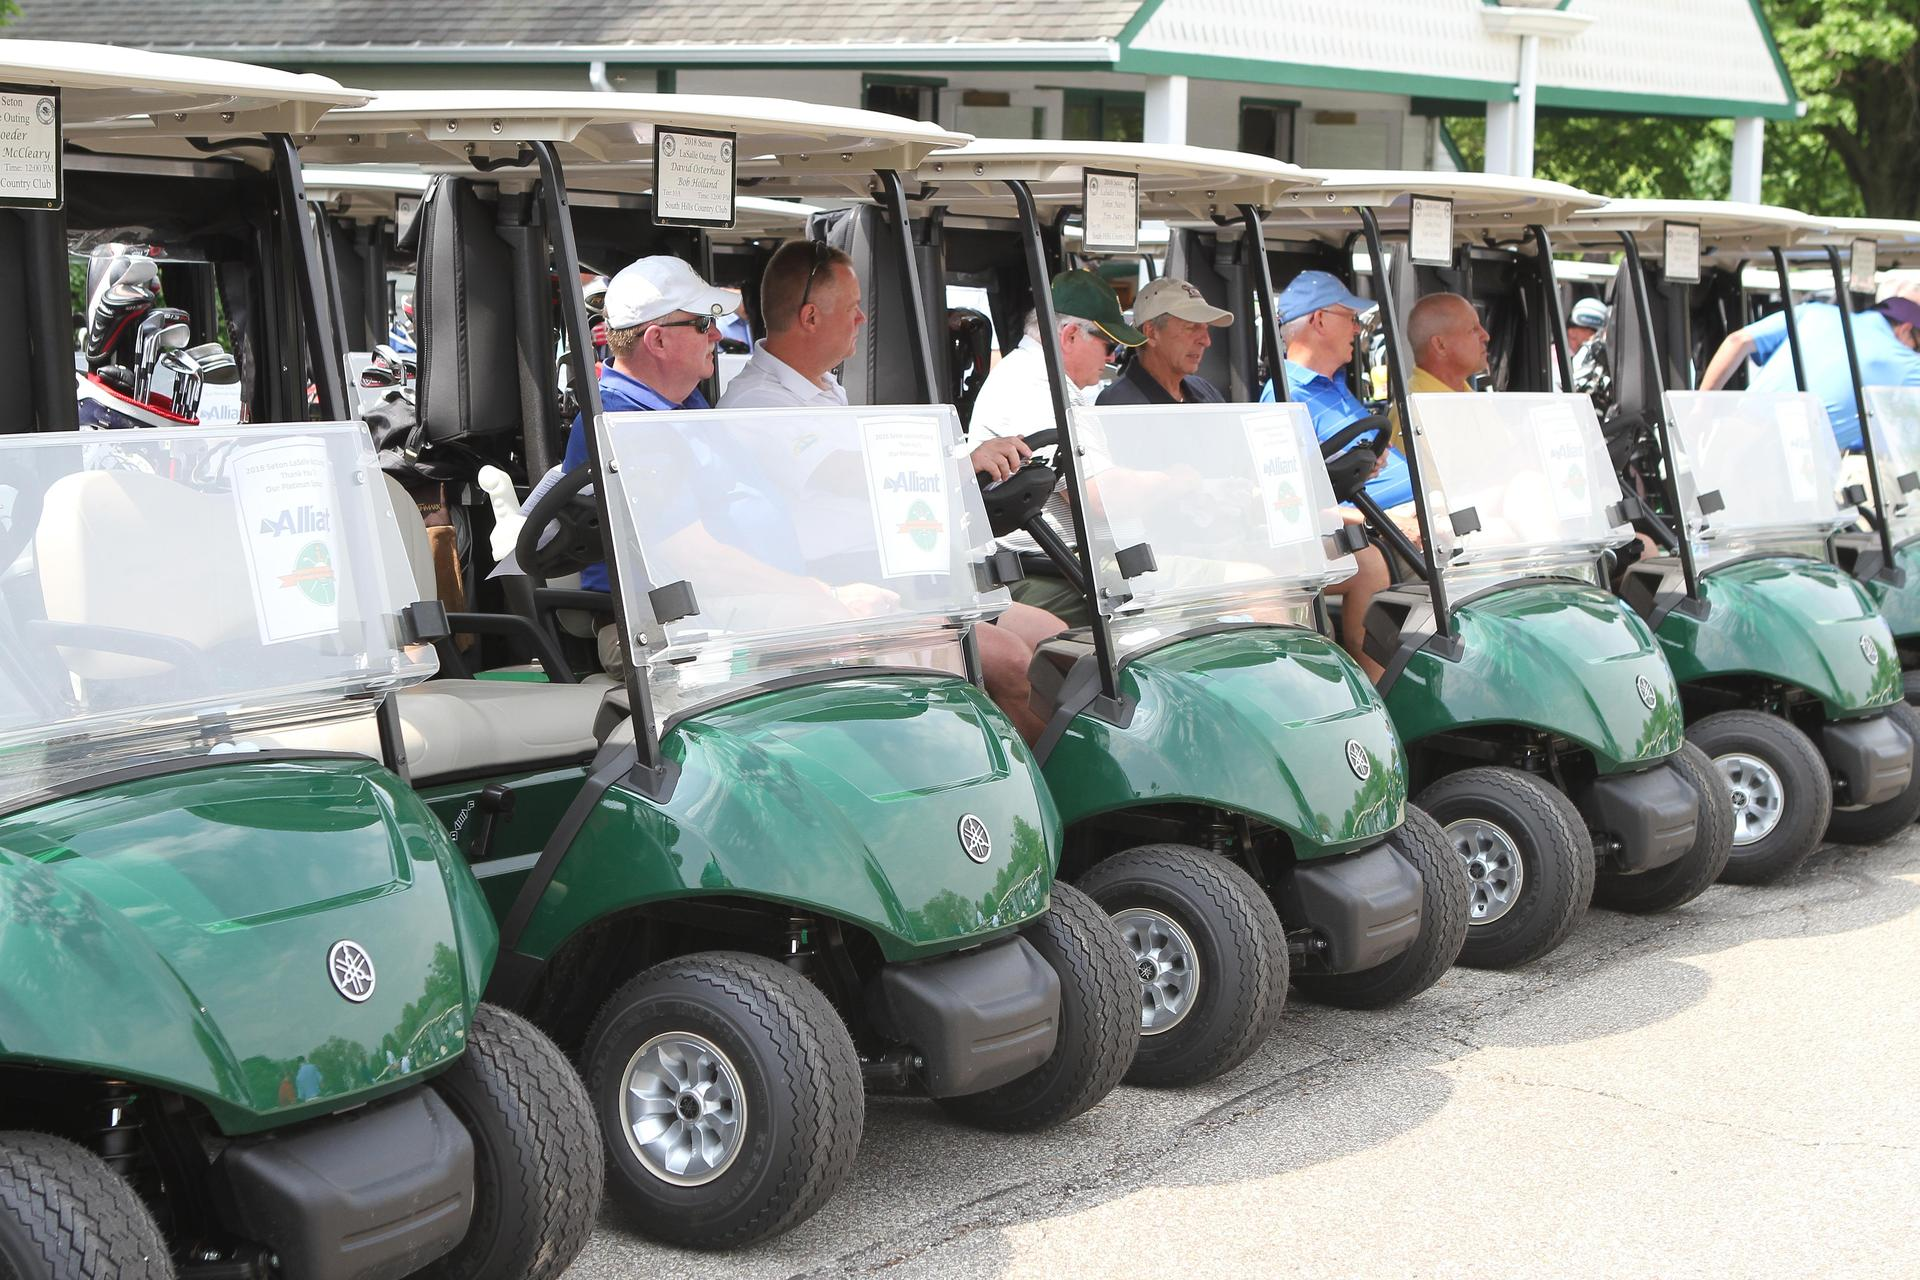 golf carts lined up at Rebel Classic